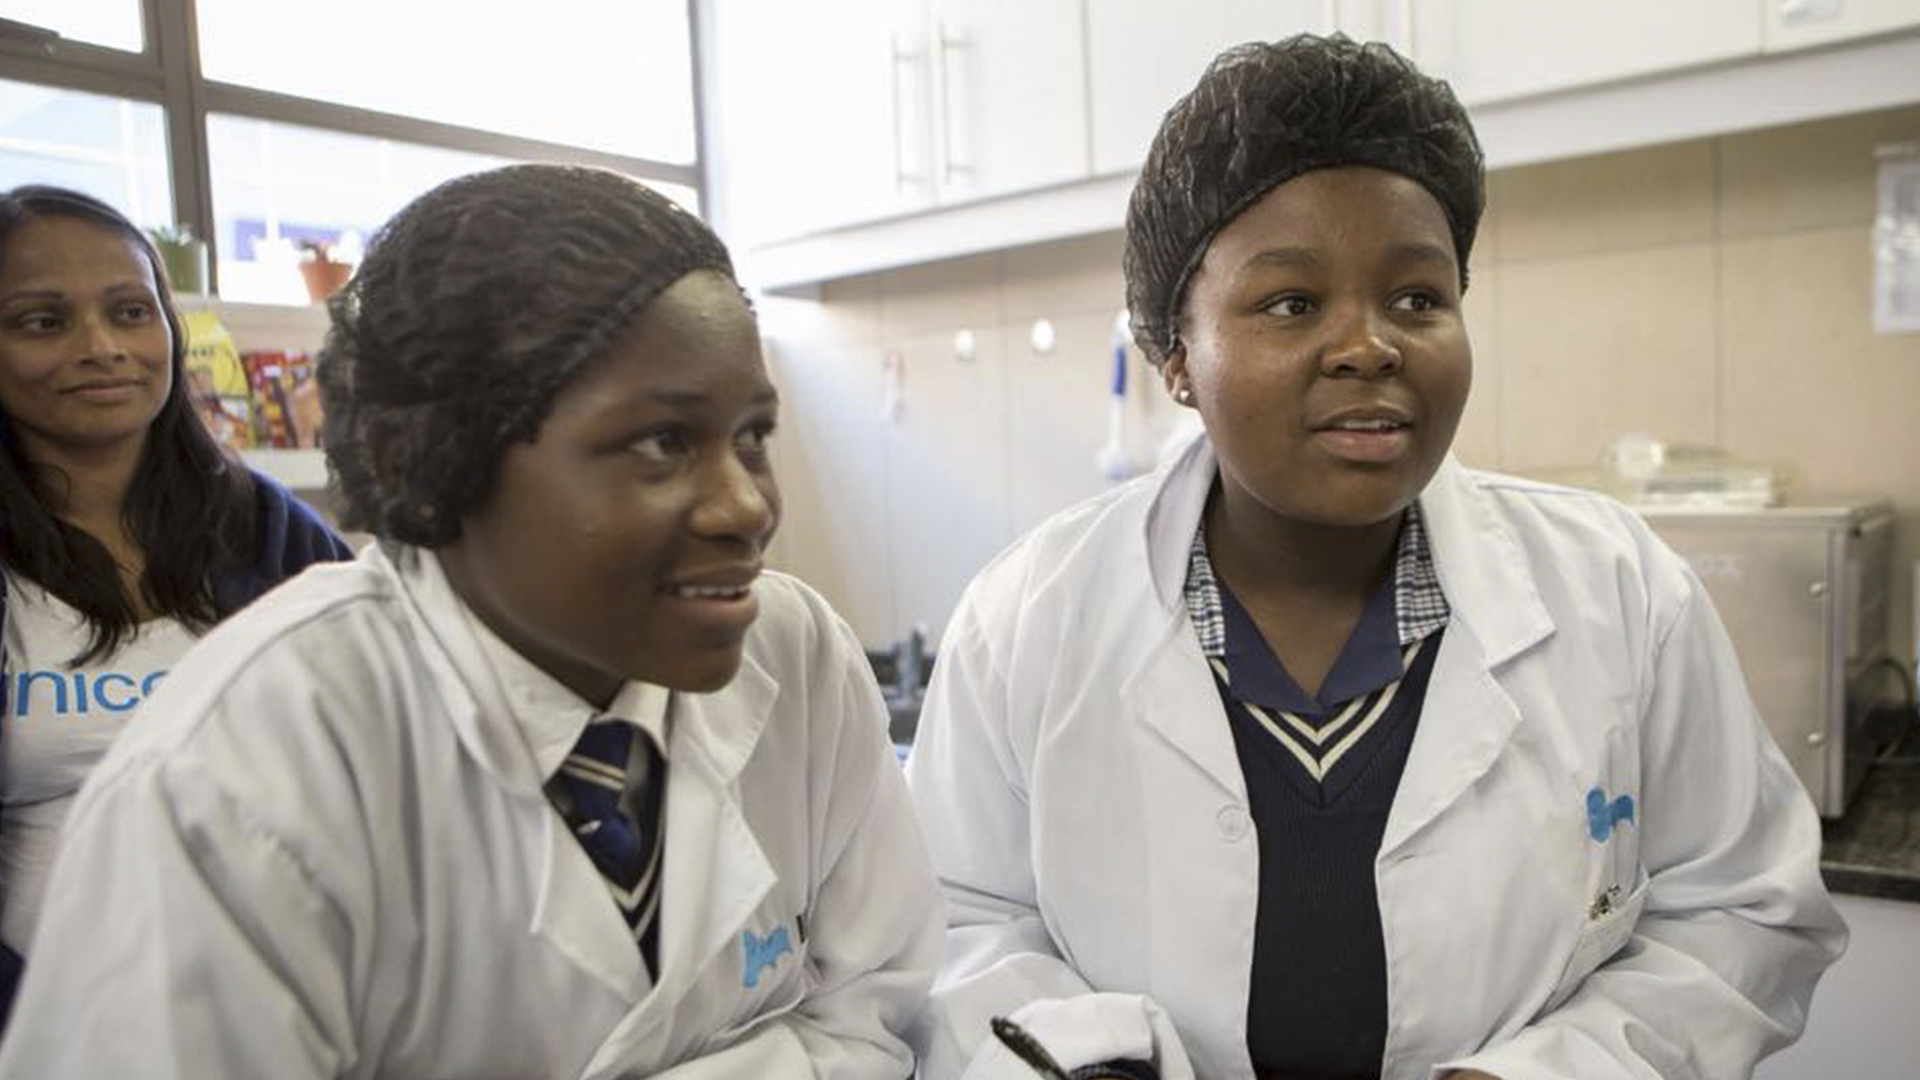 Techno girls: Creating STEM pathways for girls in South Africa